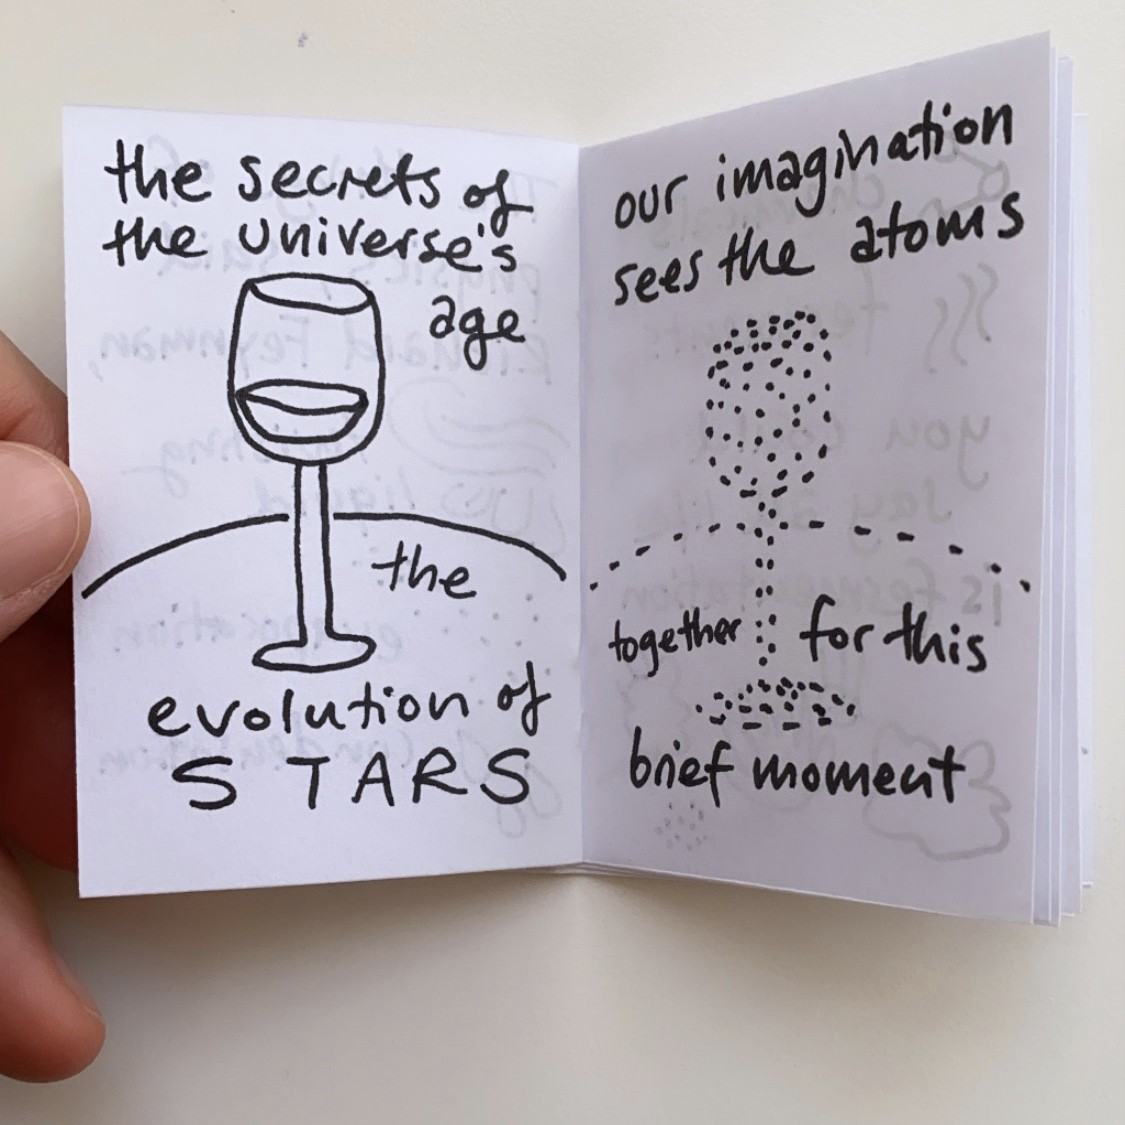 A poet once said the whole universe is in a glass of wine. The universe's age, the evolution of the stars.